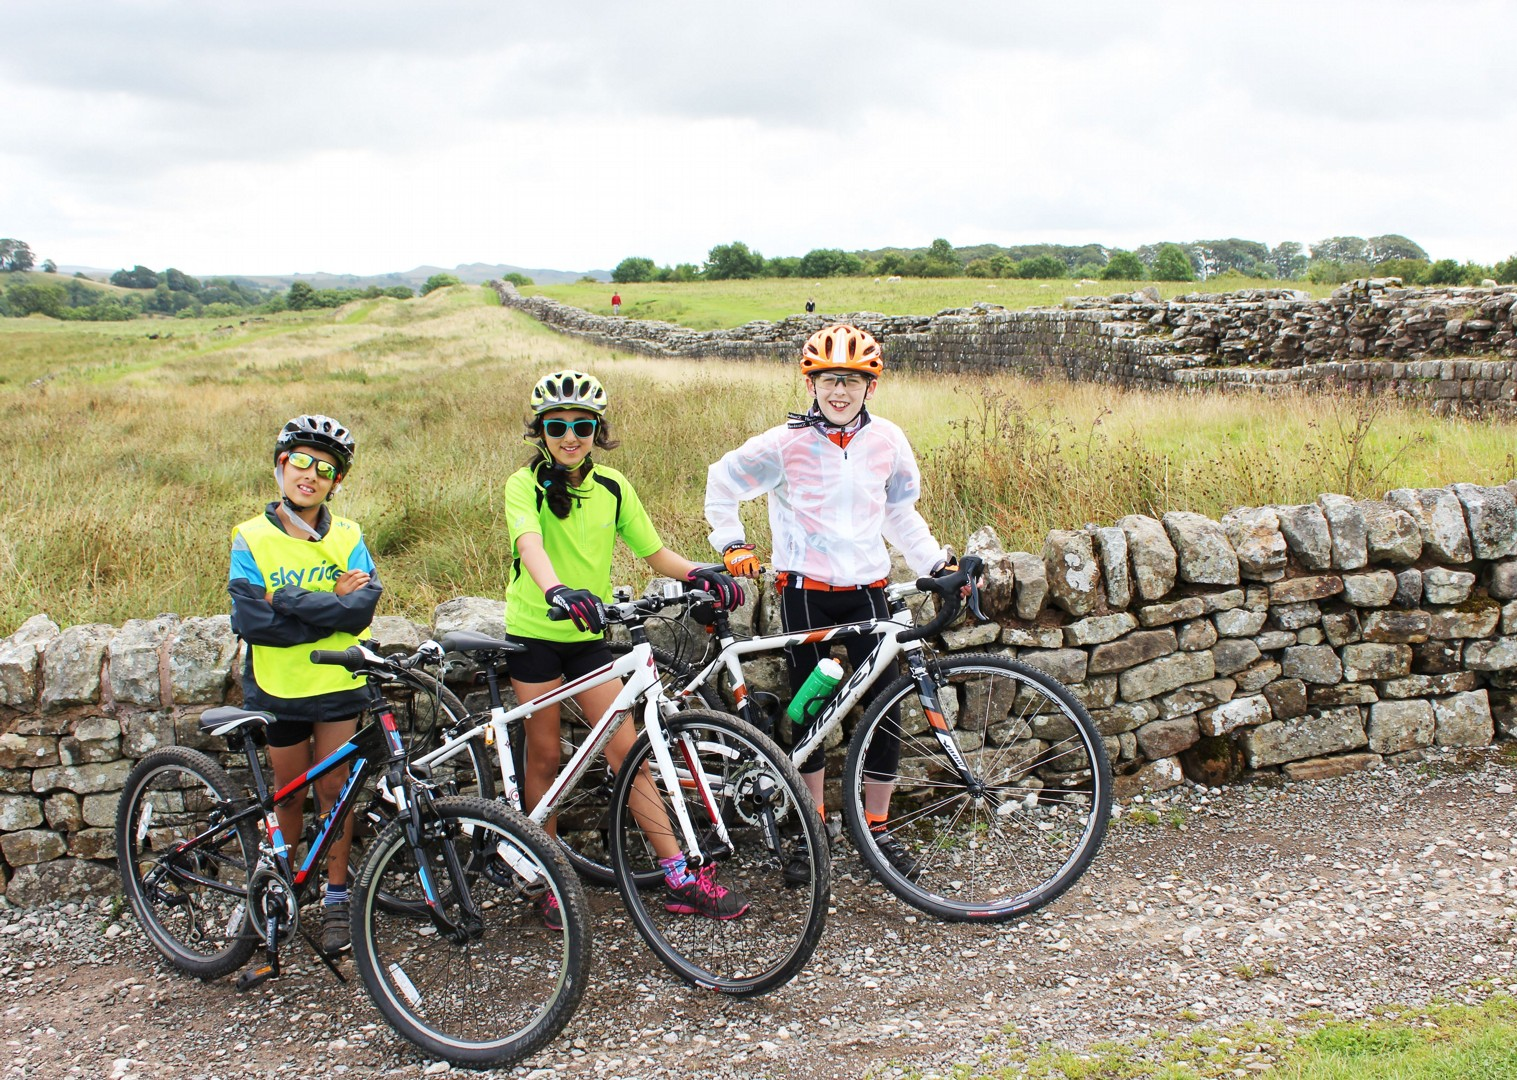 family-cycling-hadrians-wall.jpg - UK - Hadrian's Cycleway - 6 Days Cycling - Self-Guided Family Cycling Holiday - Family Cycling